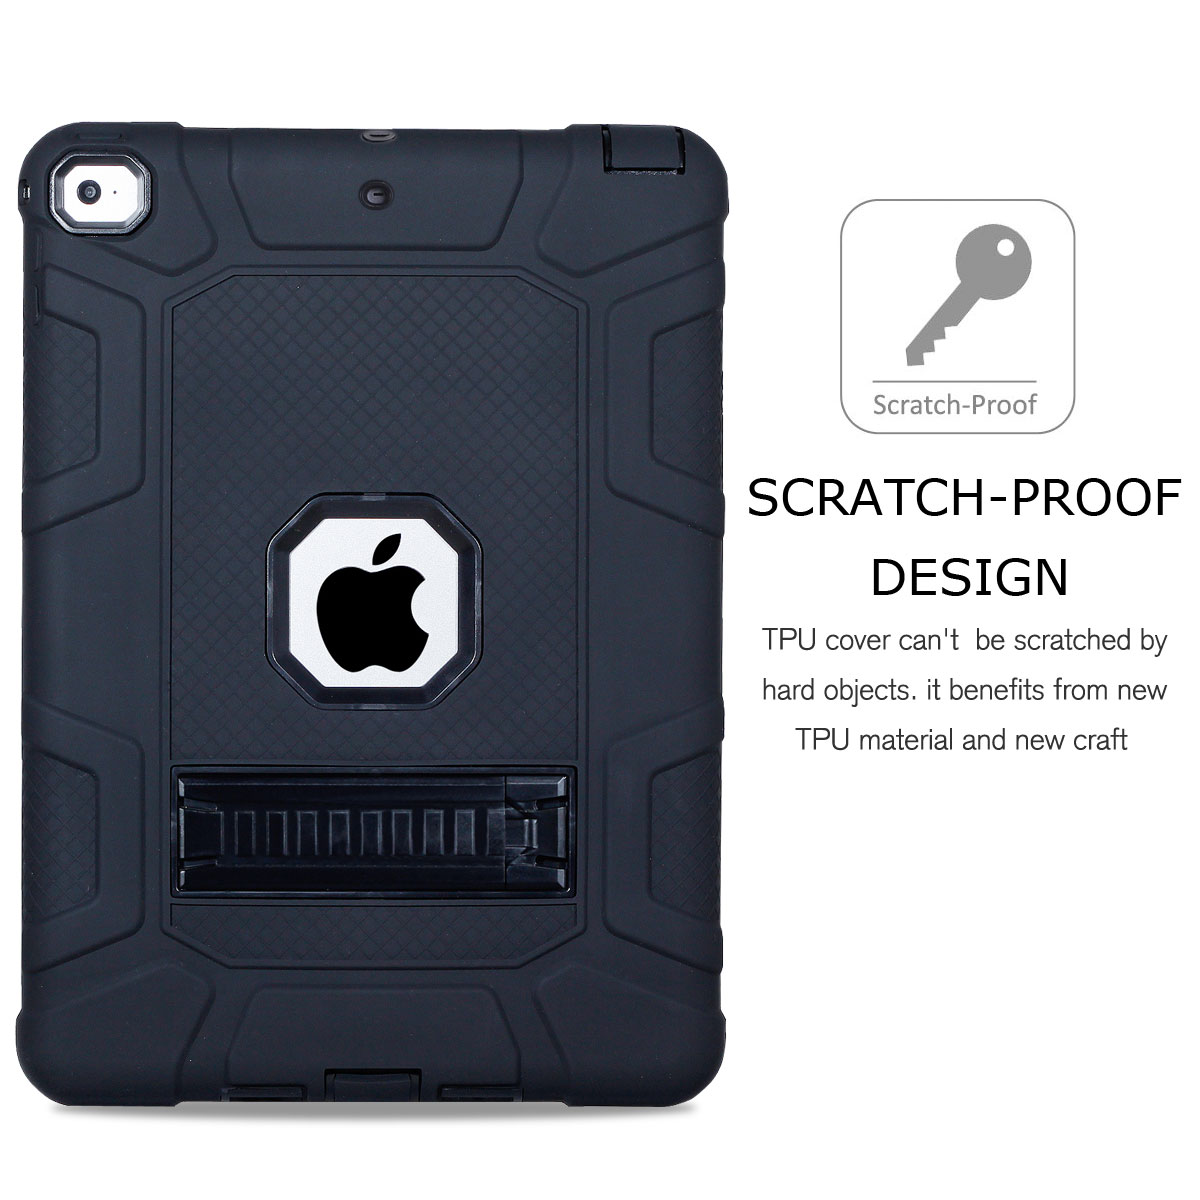 Heavy-Shockproof-Rubber-Stand-Case-Cover-For-Apple-iPad-234-5-Mini-Air-Pro-9-7-034 thumbnail 14